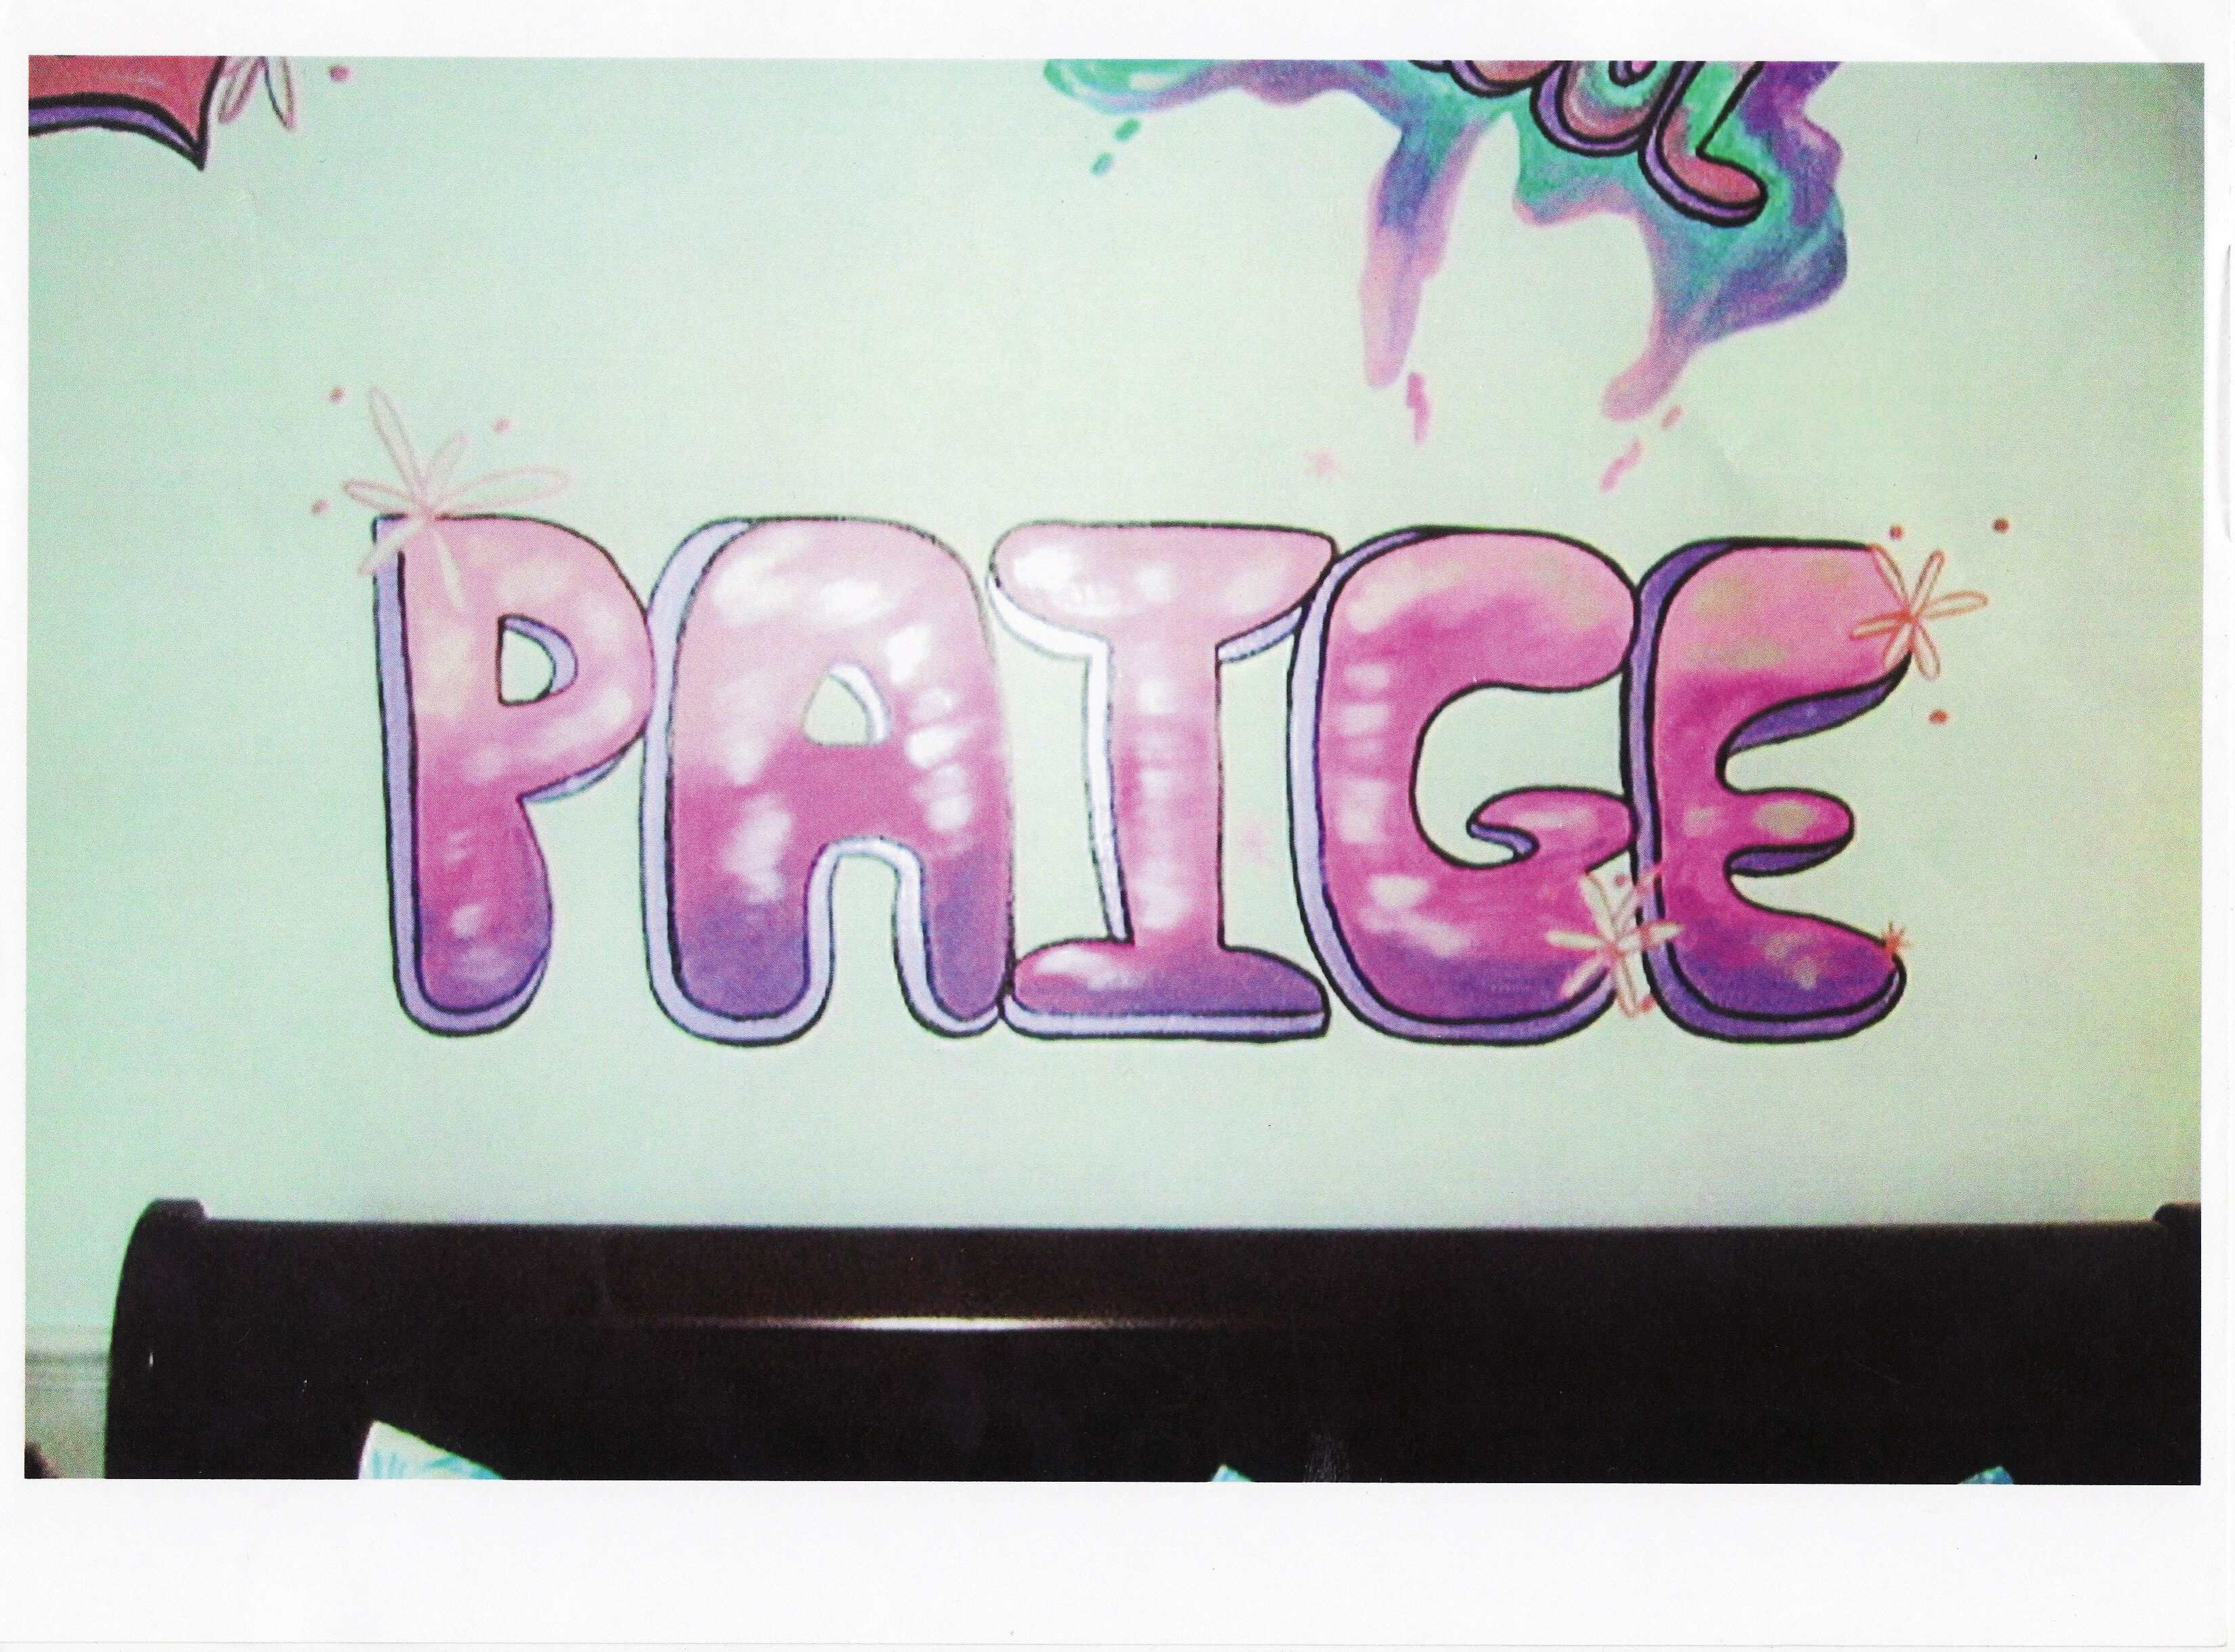 Child S Name On Head Board Wall Mural Painting Names Mural